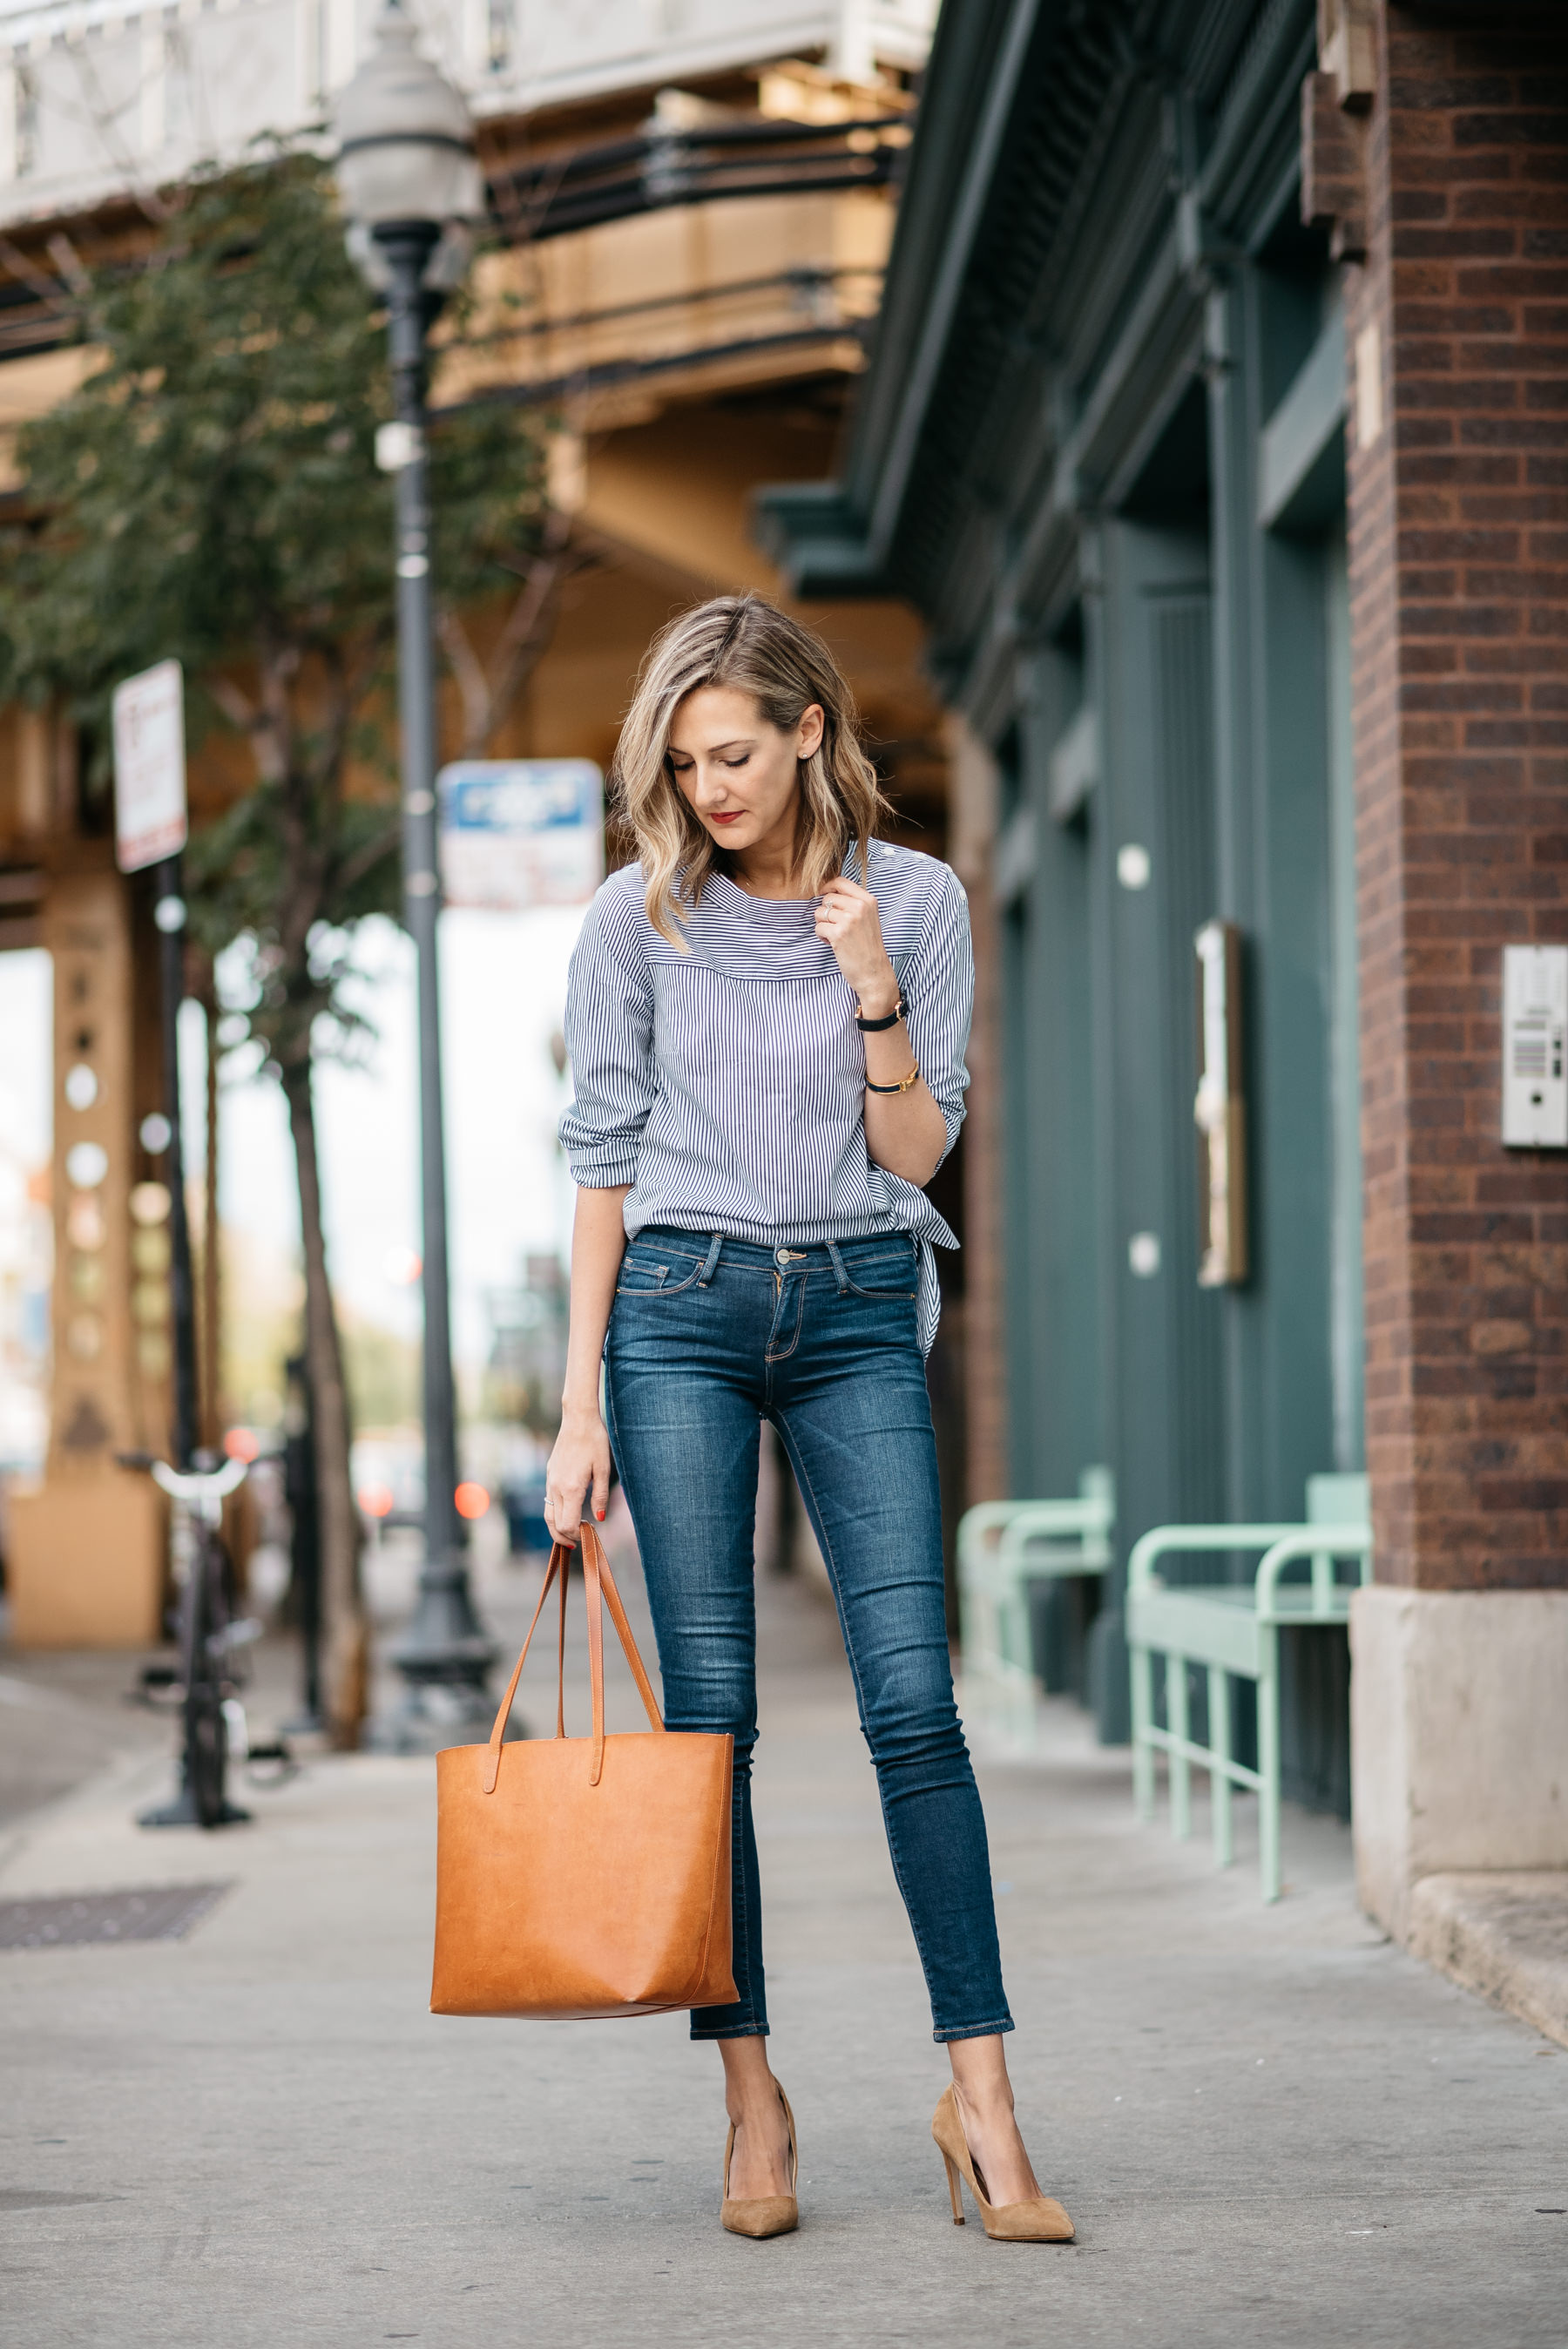 51497bd0ee47f9 j crew funnel neck top how to style a mock neck shirt with jeans